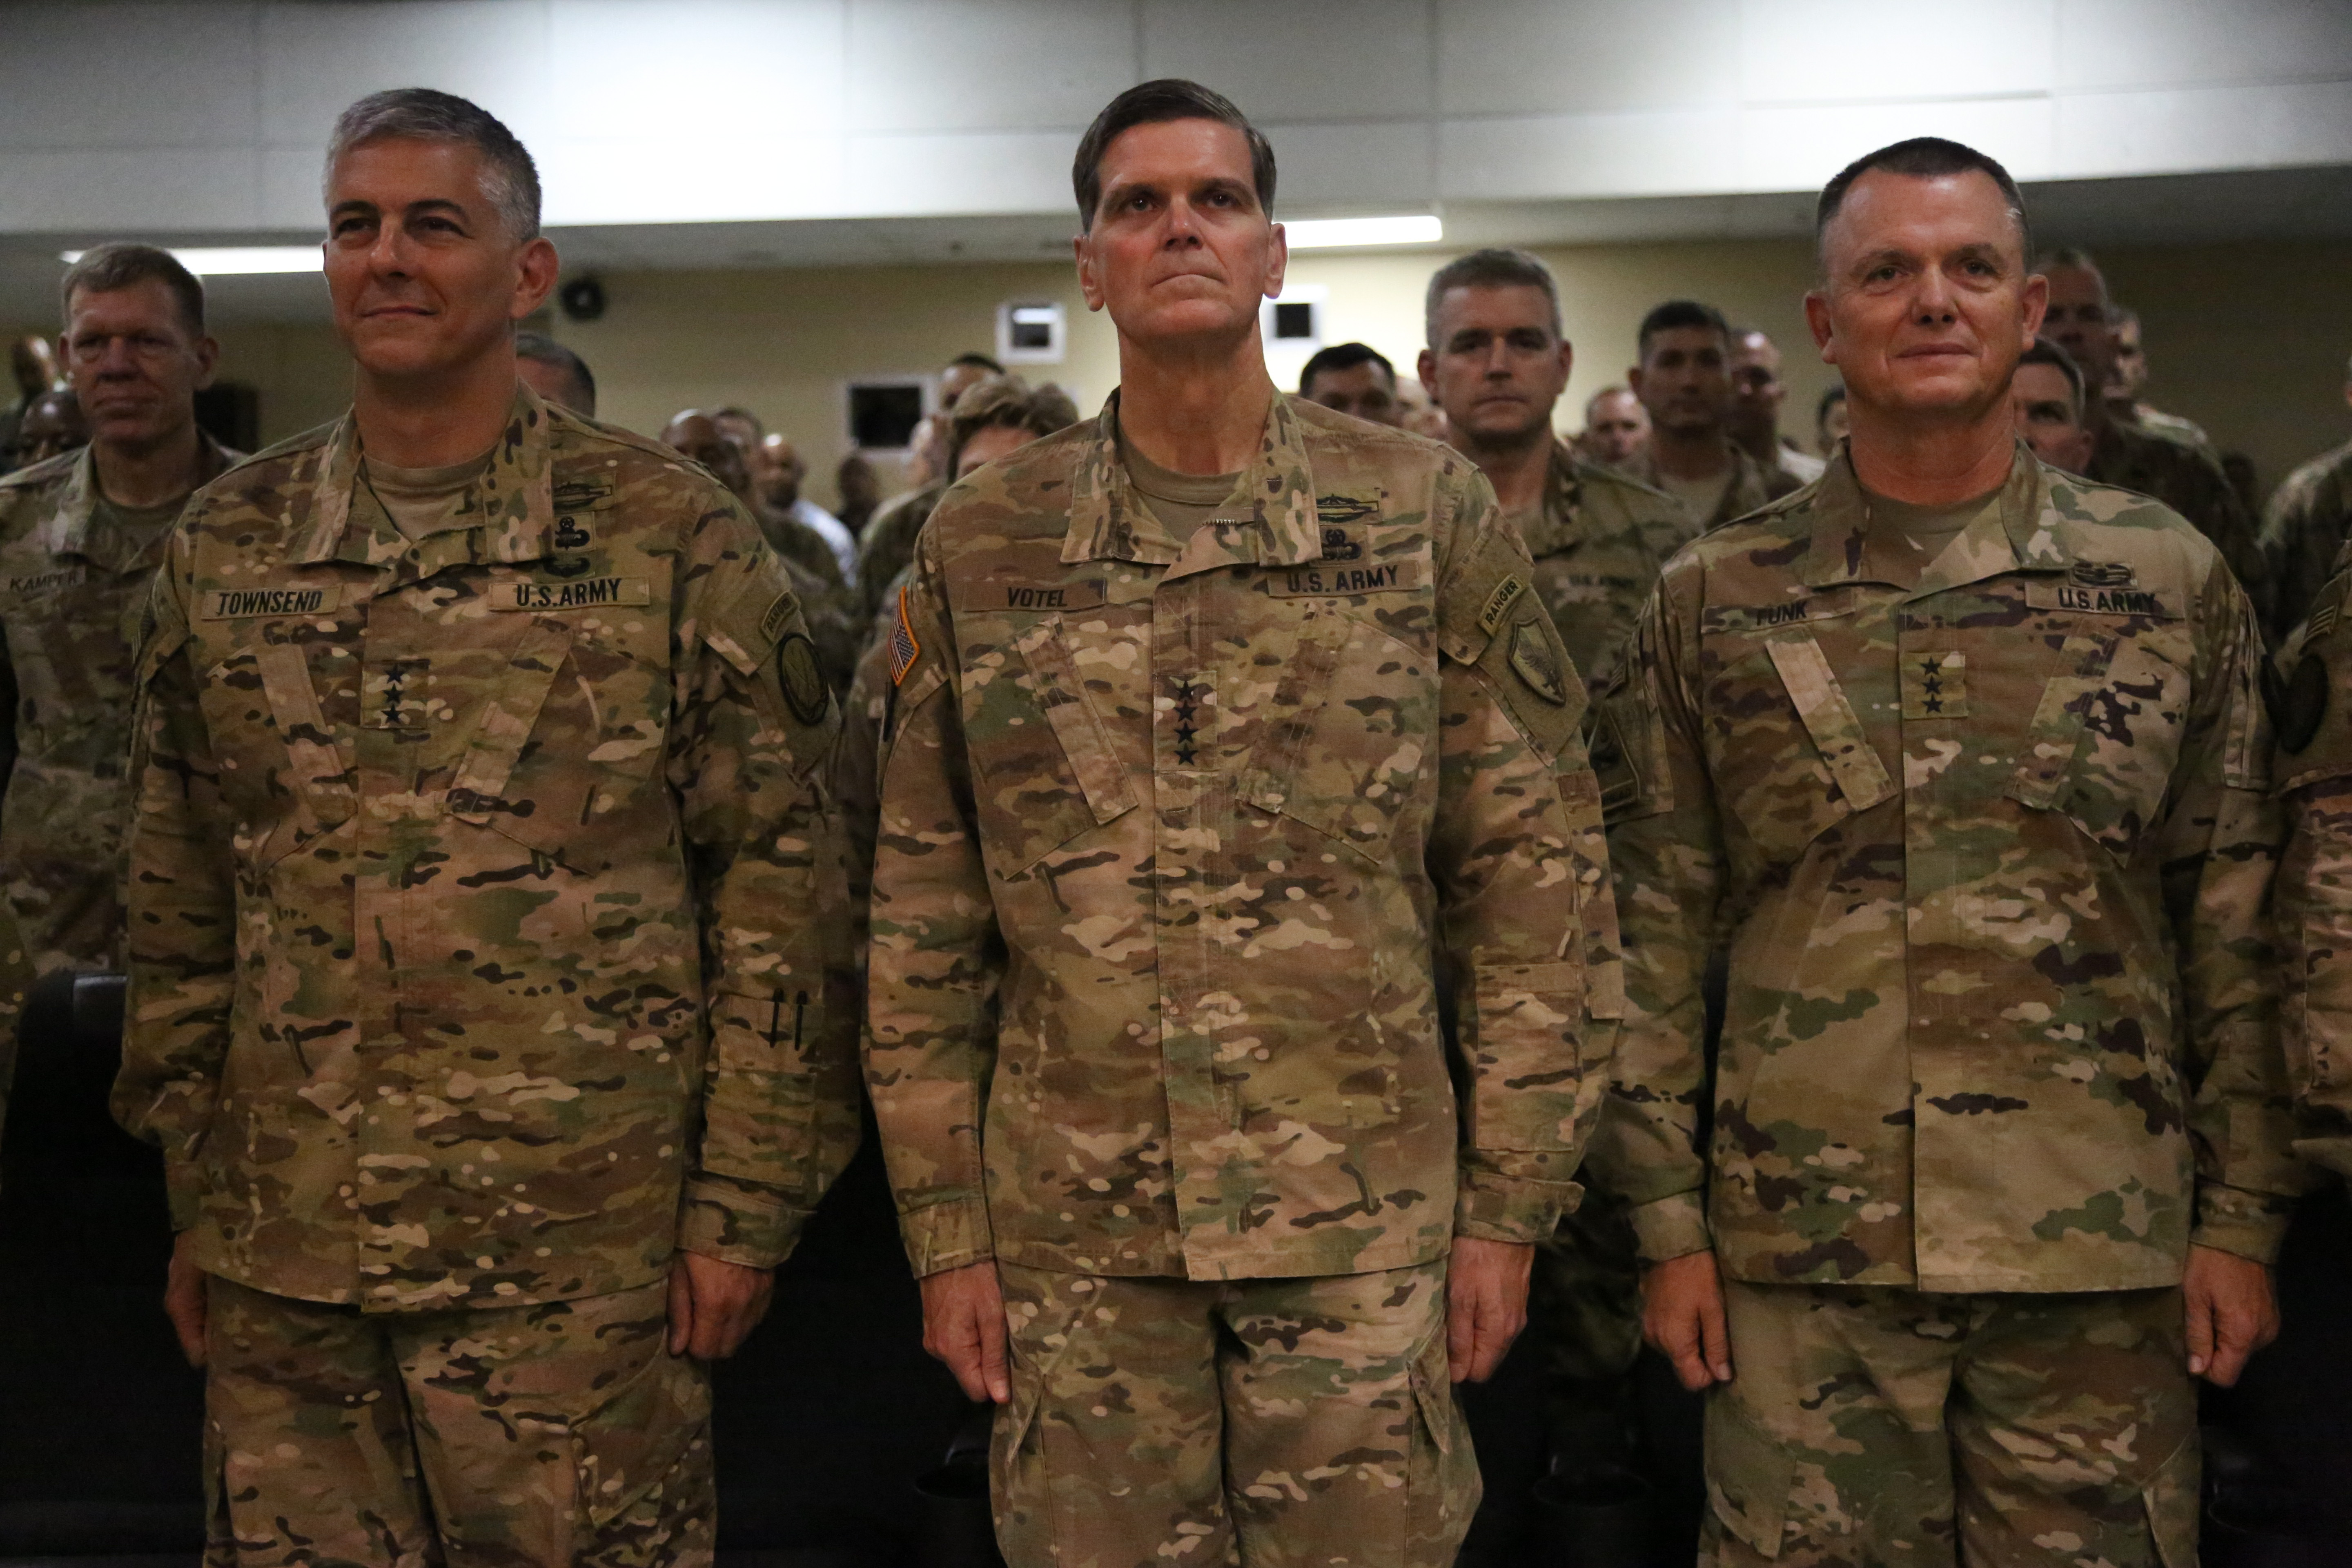 Army Lt. Gen. Funk assumes command of counter-ISIS mission